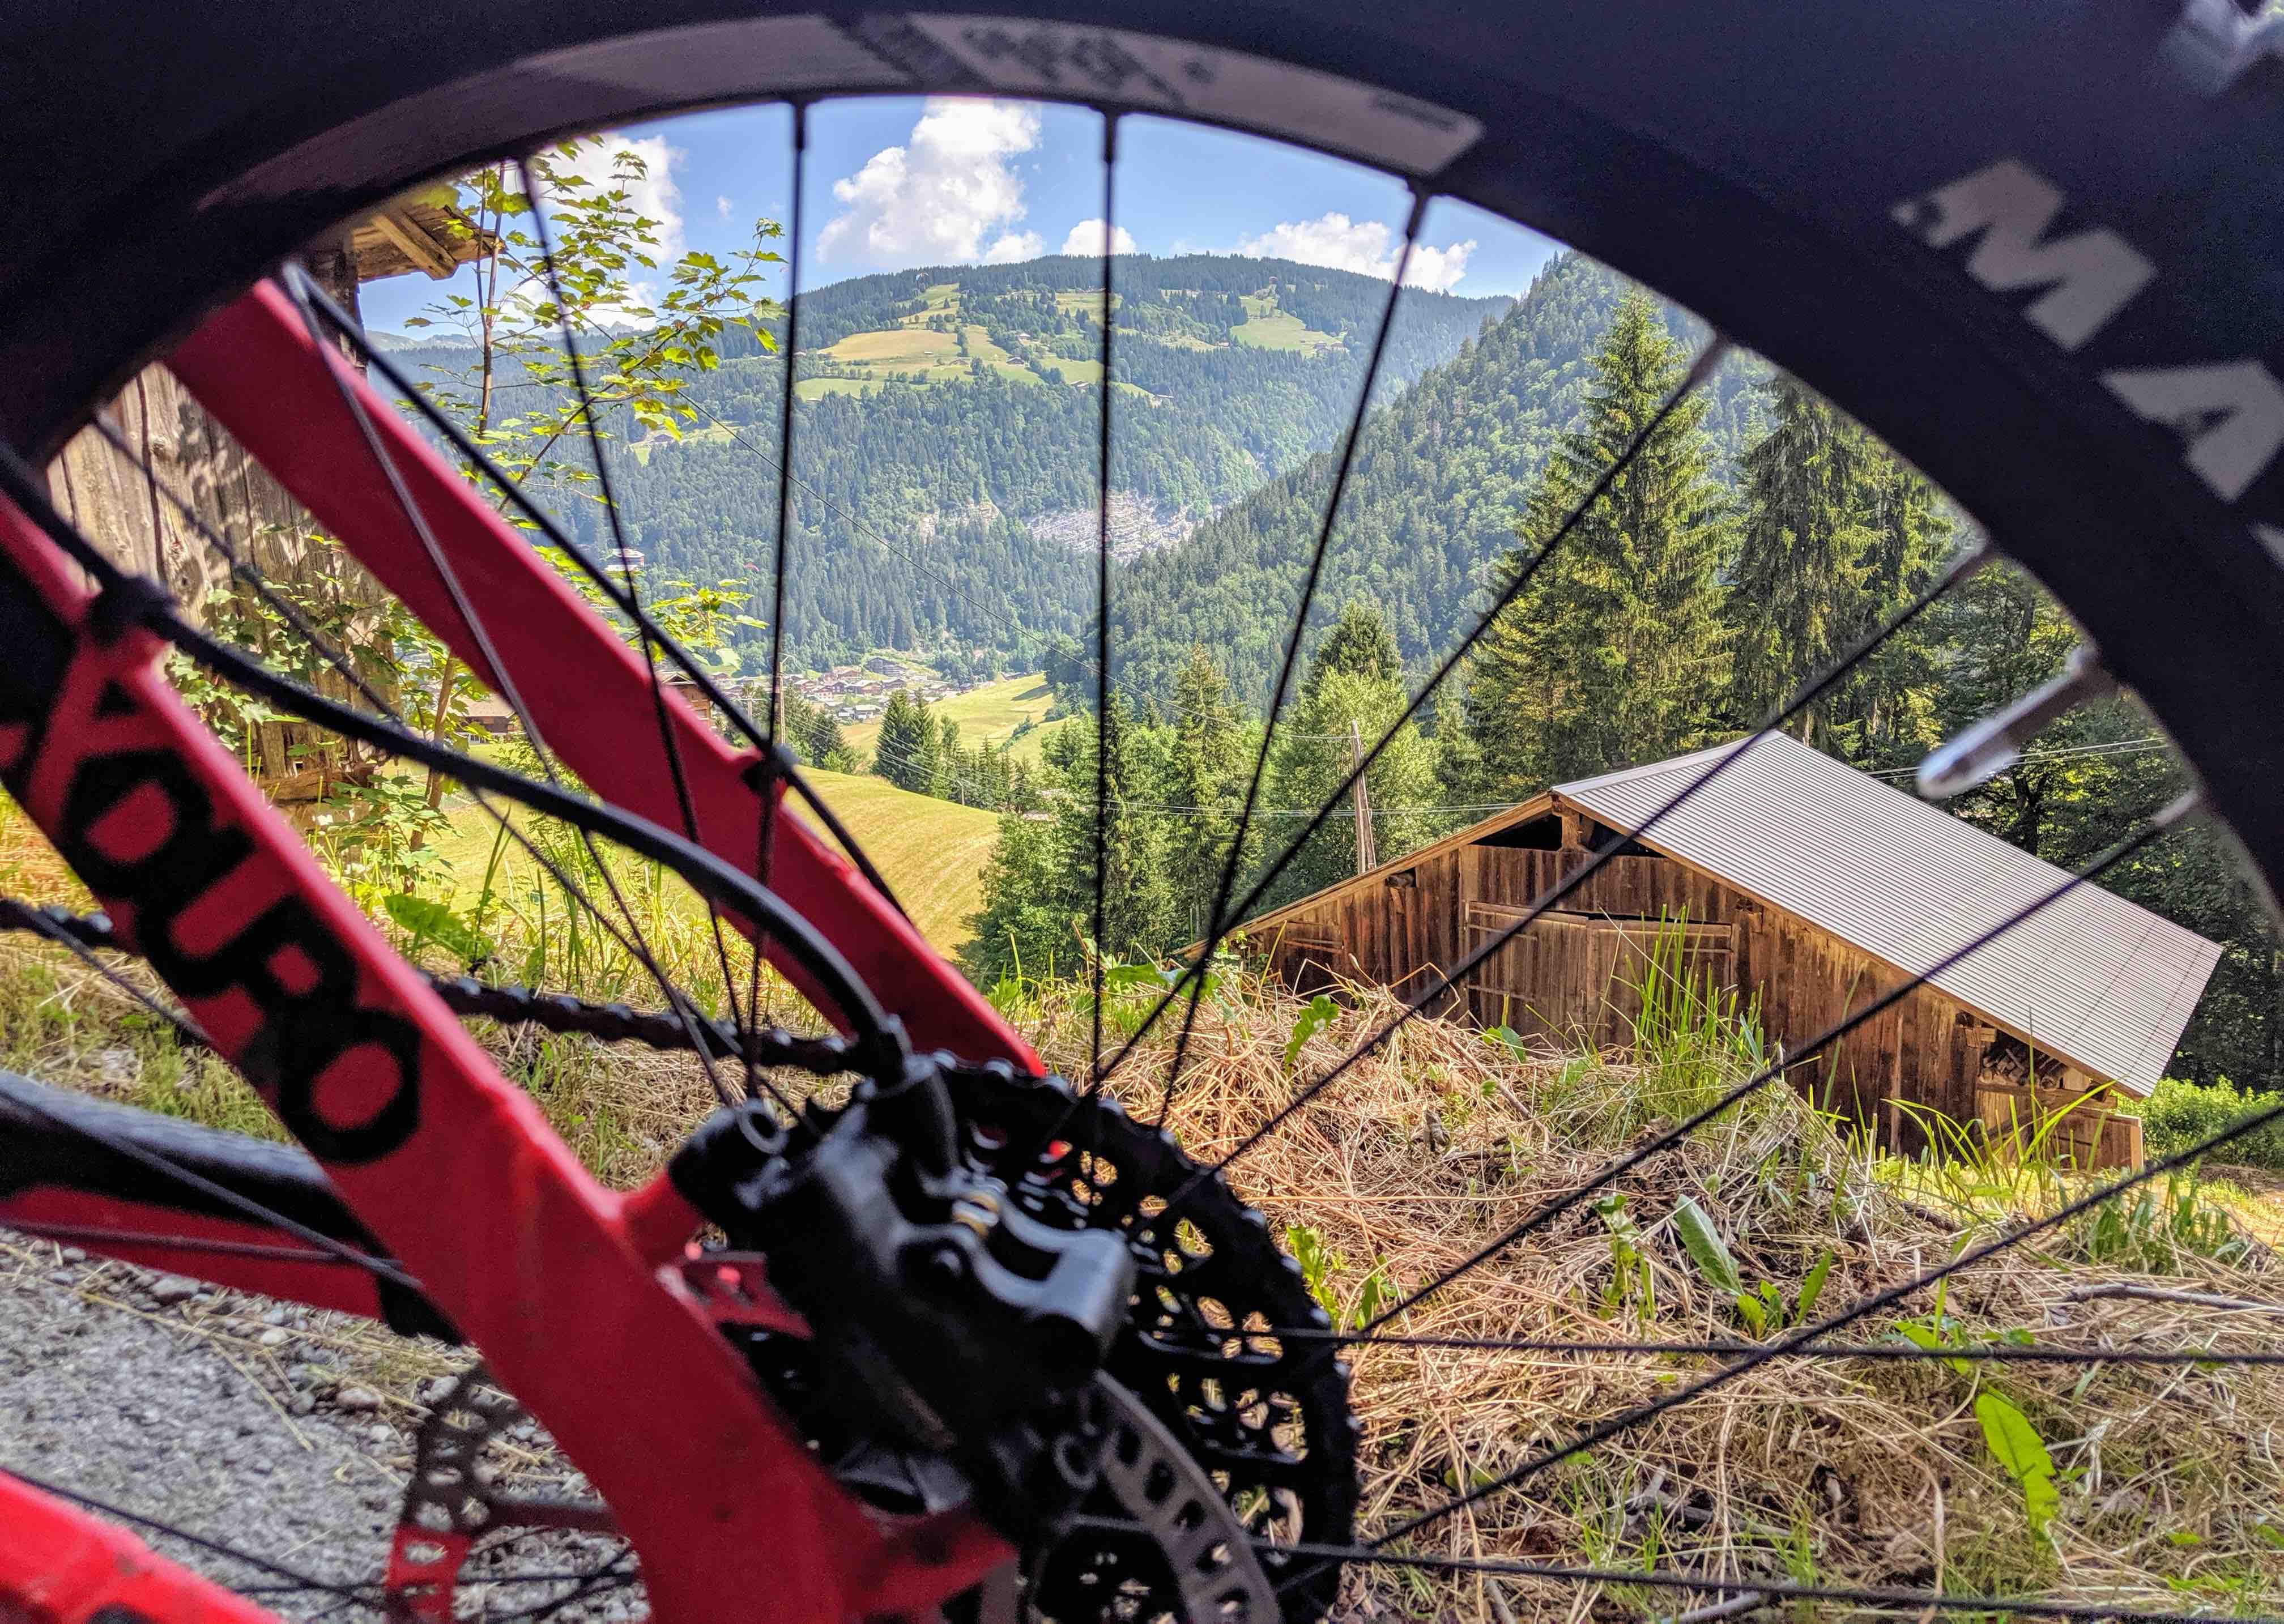 E-mountainbike in the alps